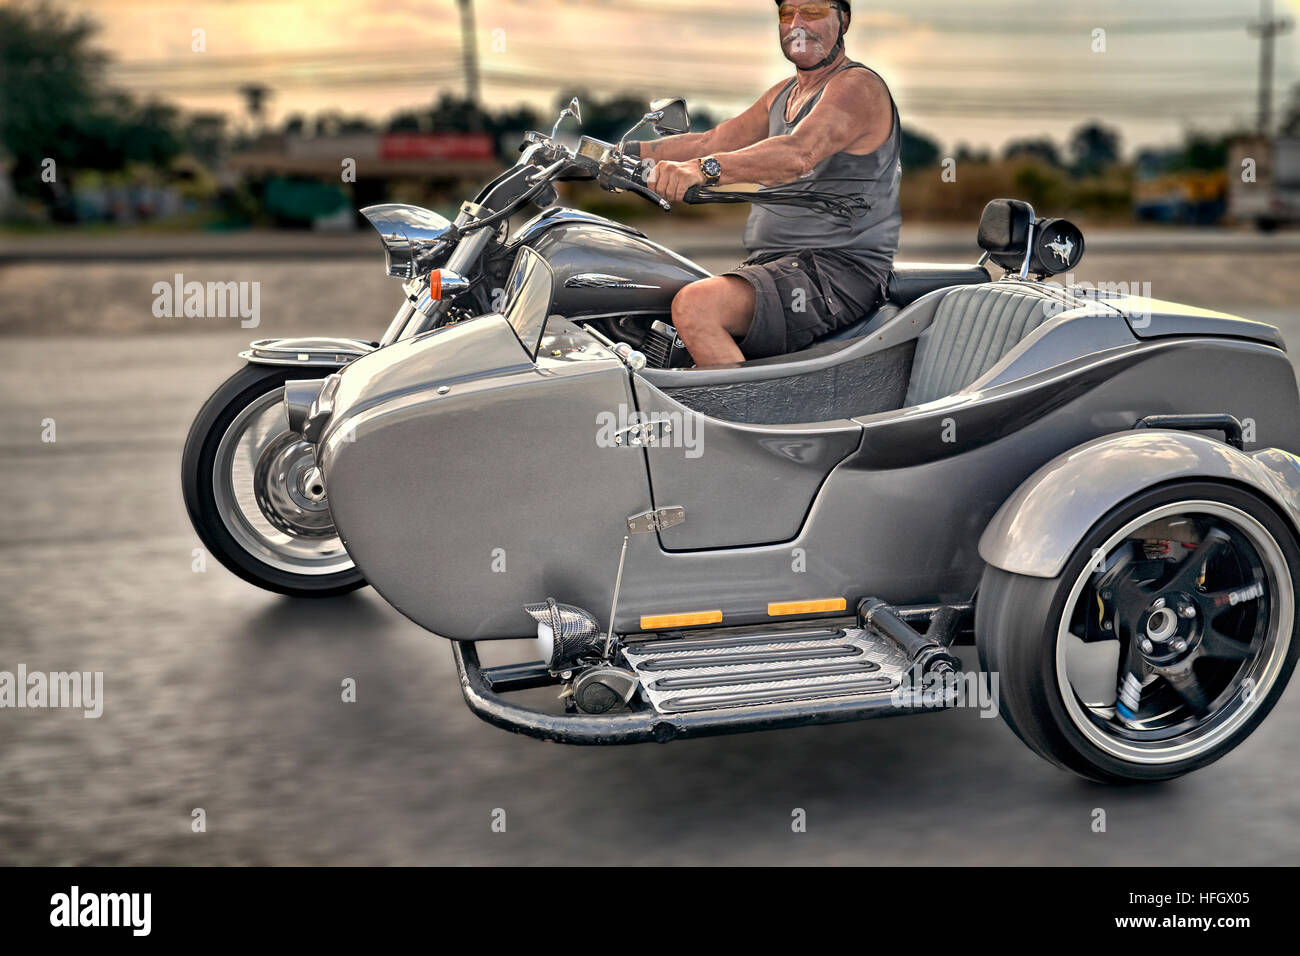 Sidecars Stock Photos & Sidecars Stock Images - Page 2 - Alamy